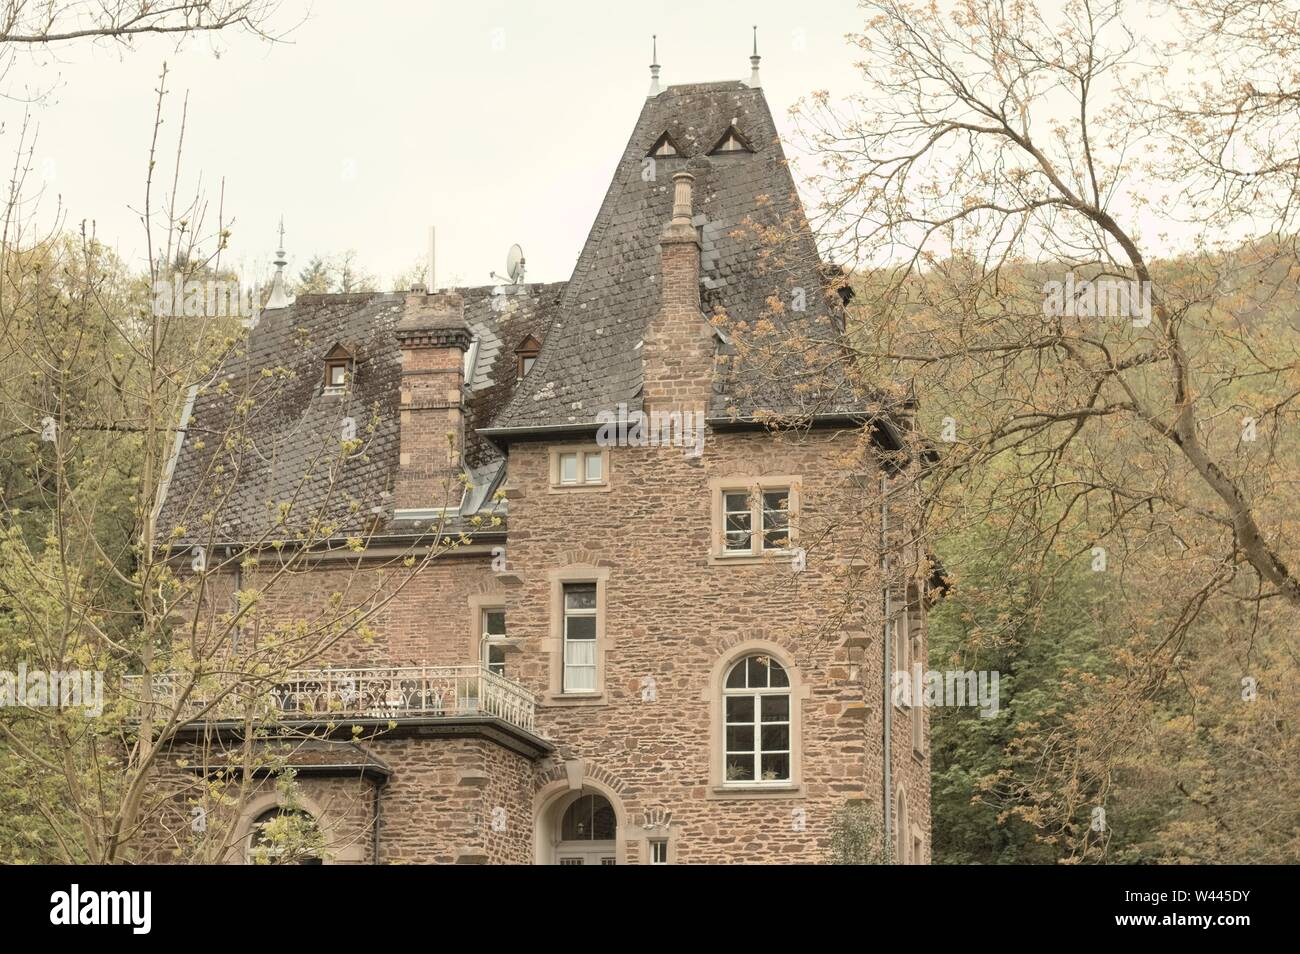 Scary cottage in the countryside (Germany, Europe) Stock Photo